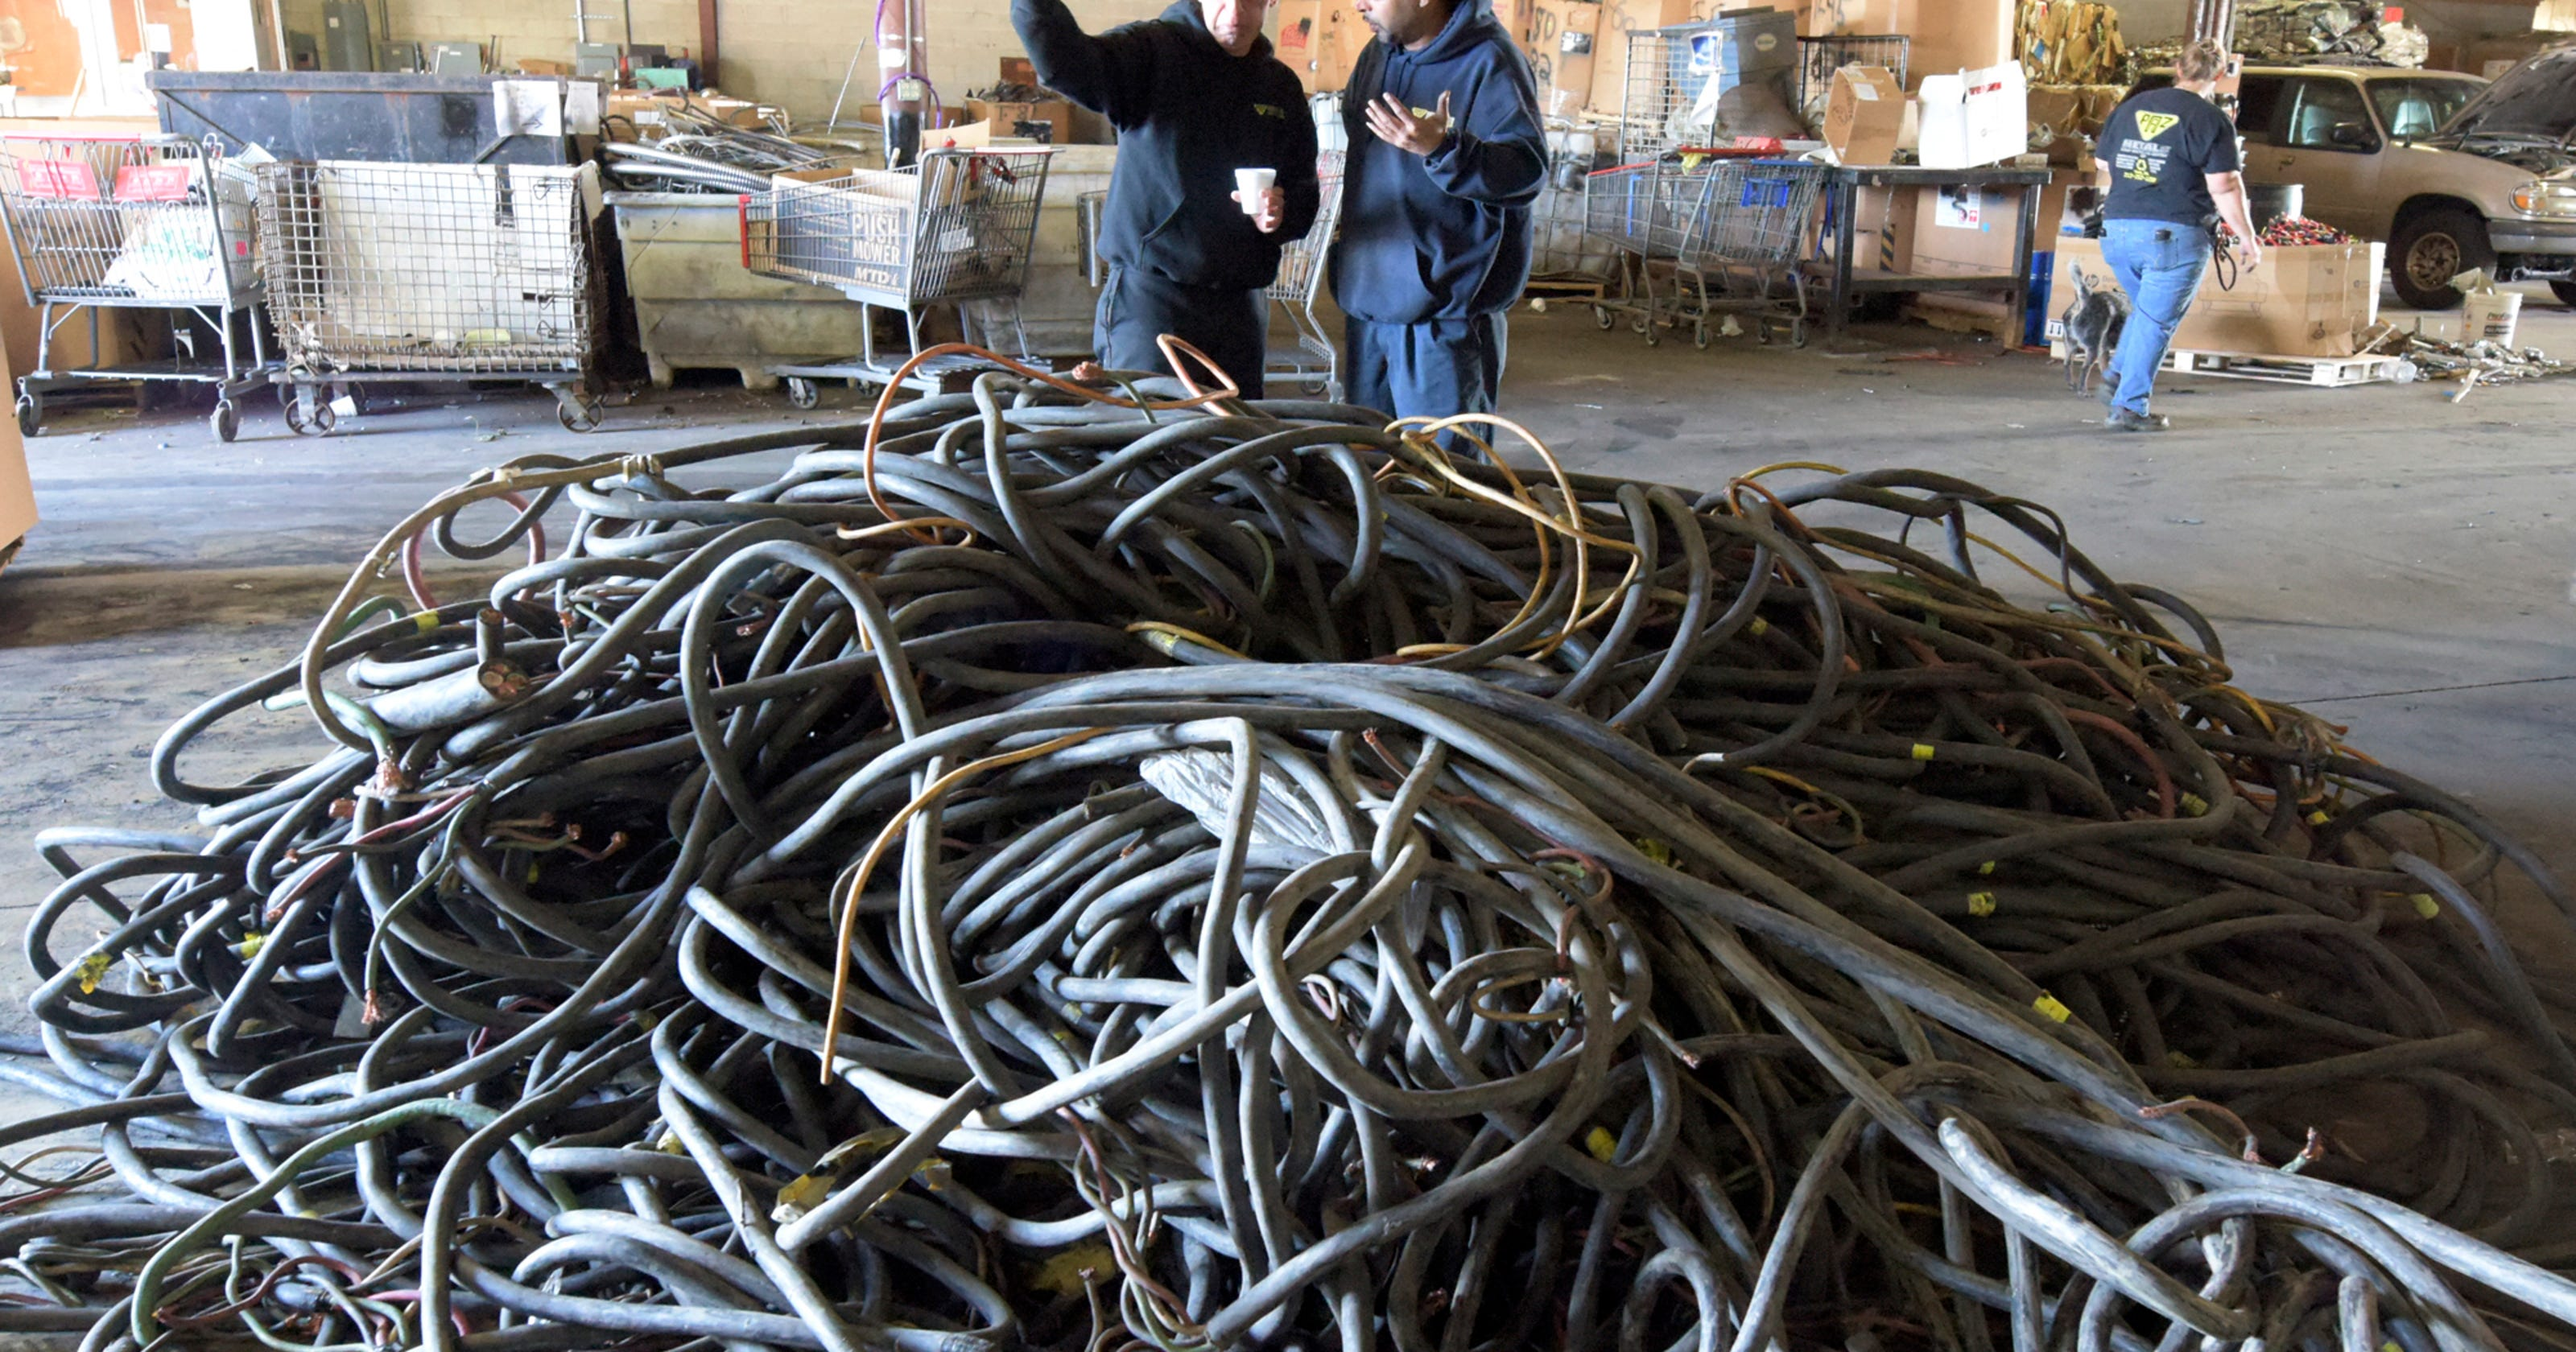 Scrap metal dealers work with police to catch thieves